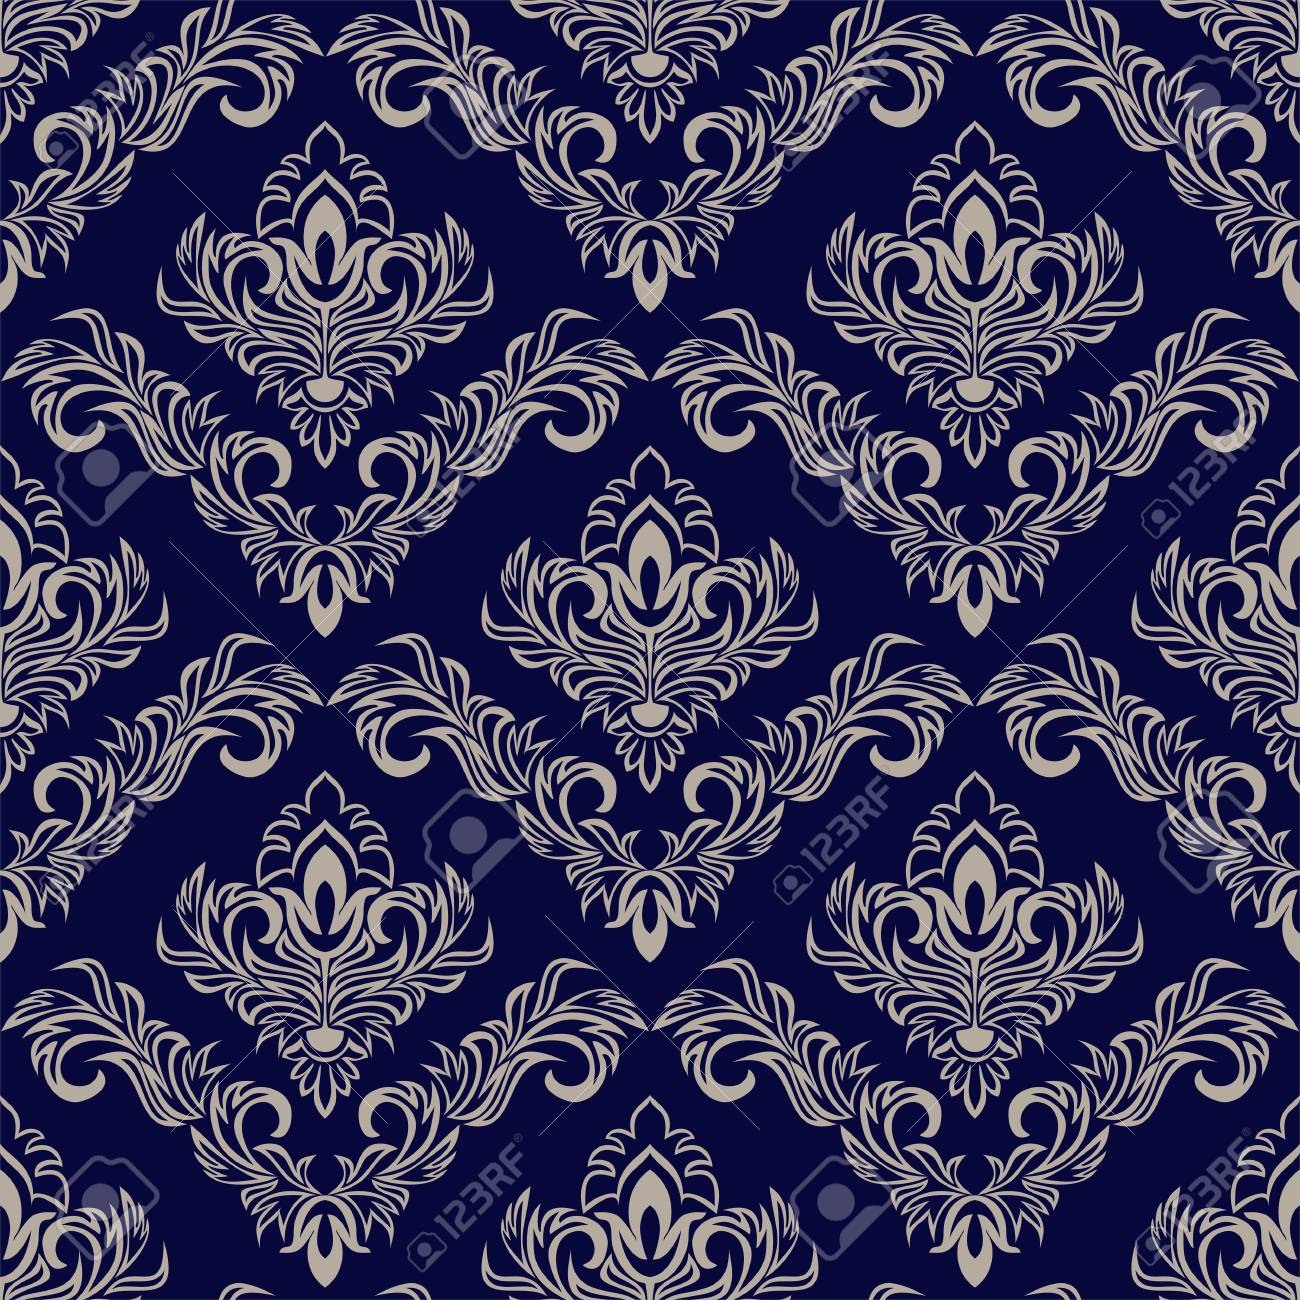 Seamless navy blue Wallpaper with damask Ornament for design - 97509731